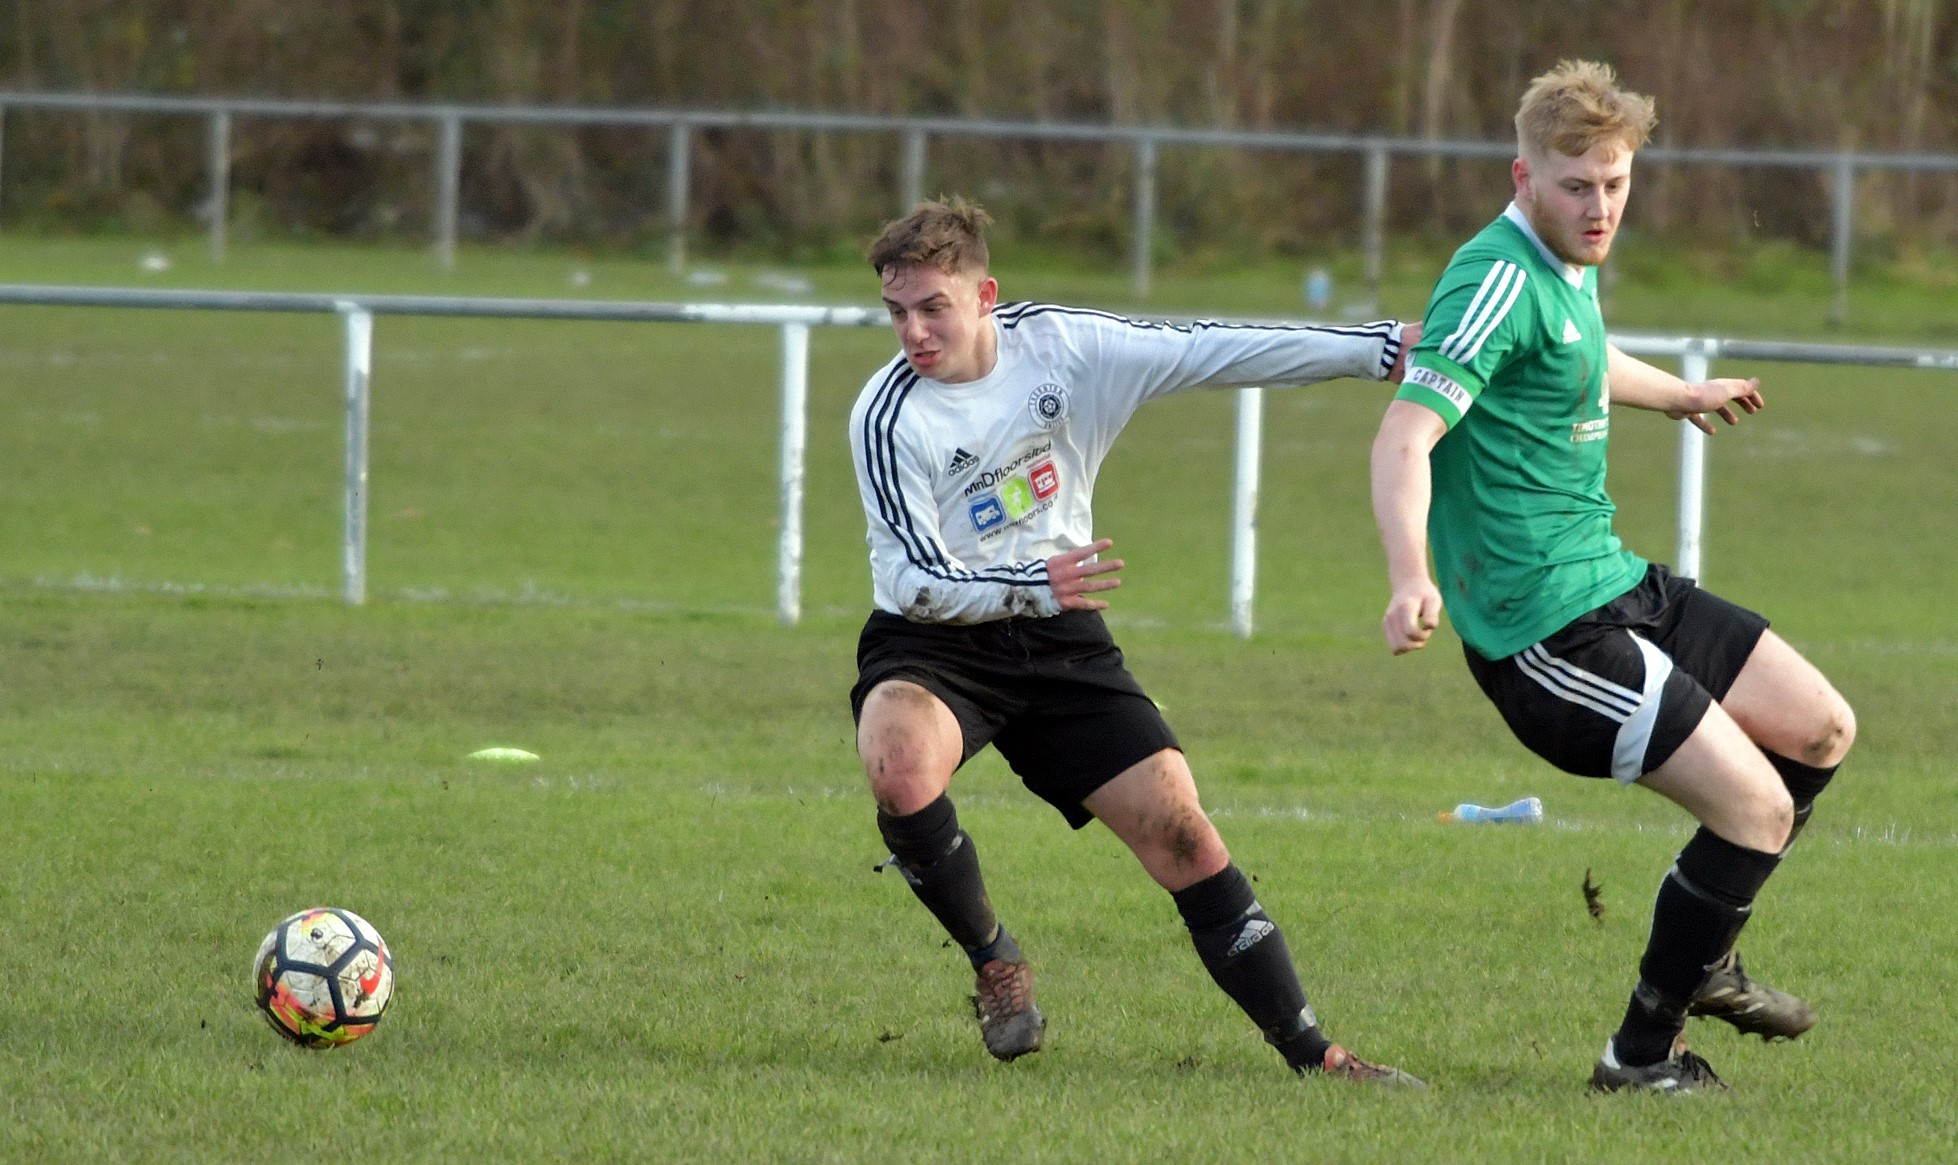 Keann Shaw, right, opened the scoring for Oxenhope in their win over Altofts